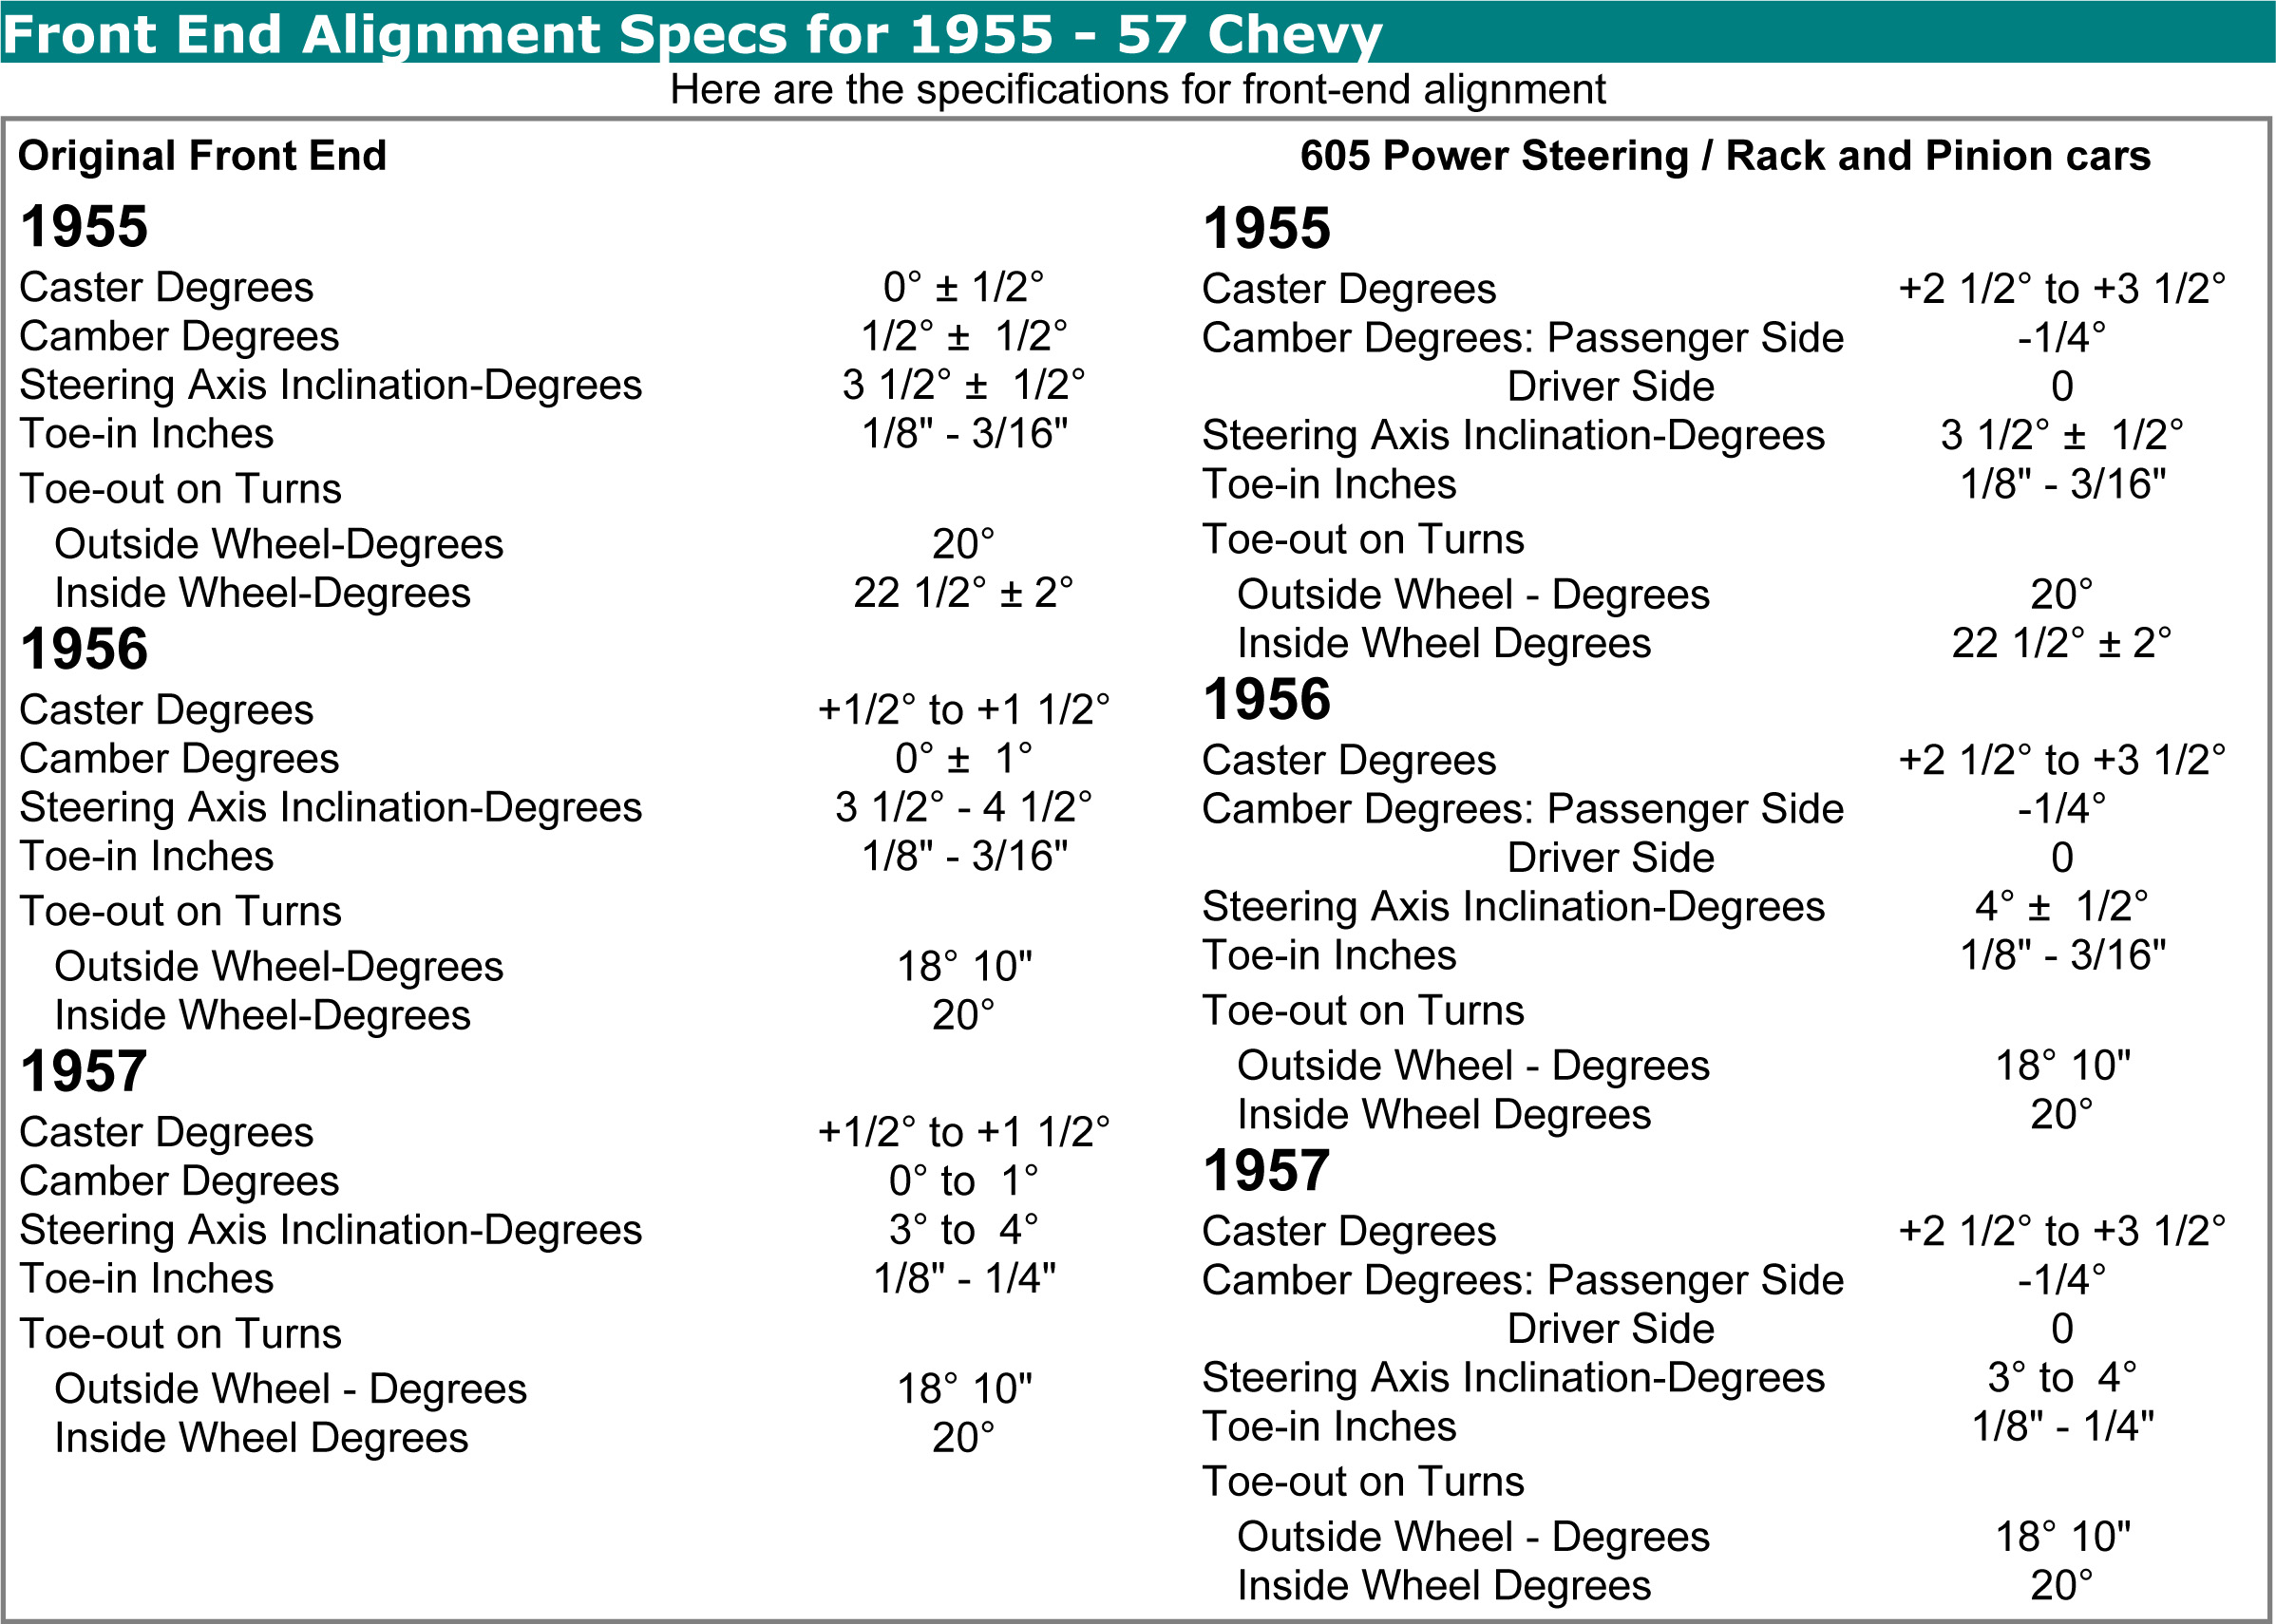 1955 1957 Chevy Alignment Specs Danchuk Usa Blog